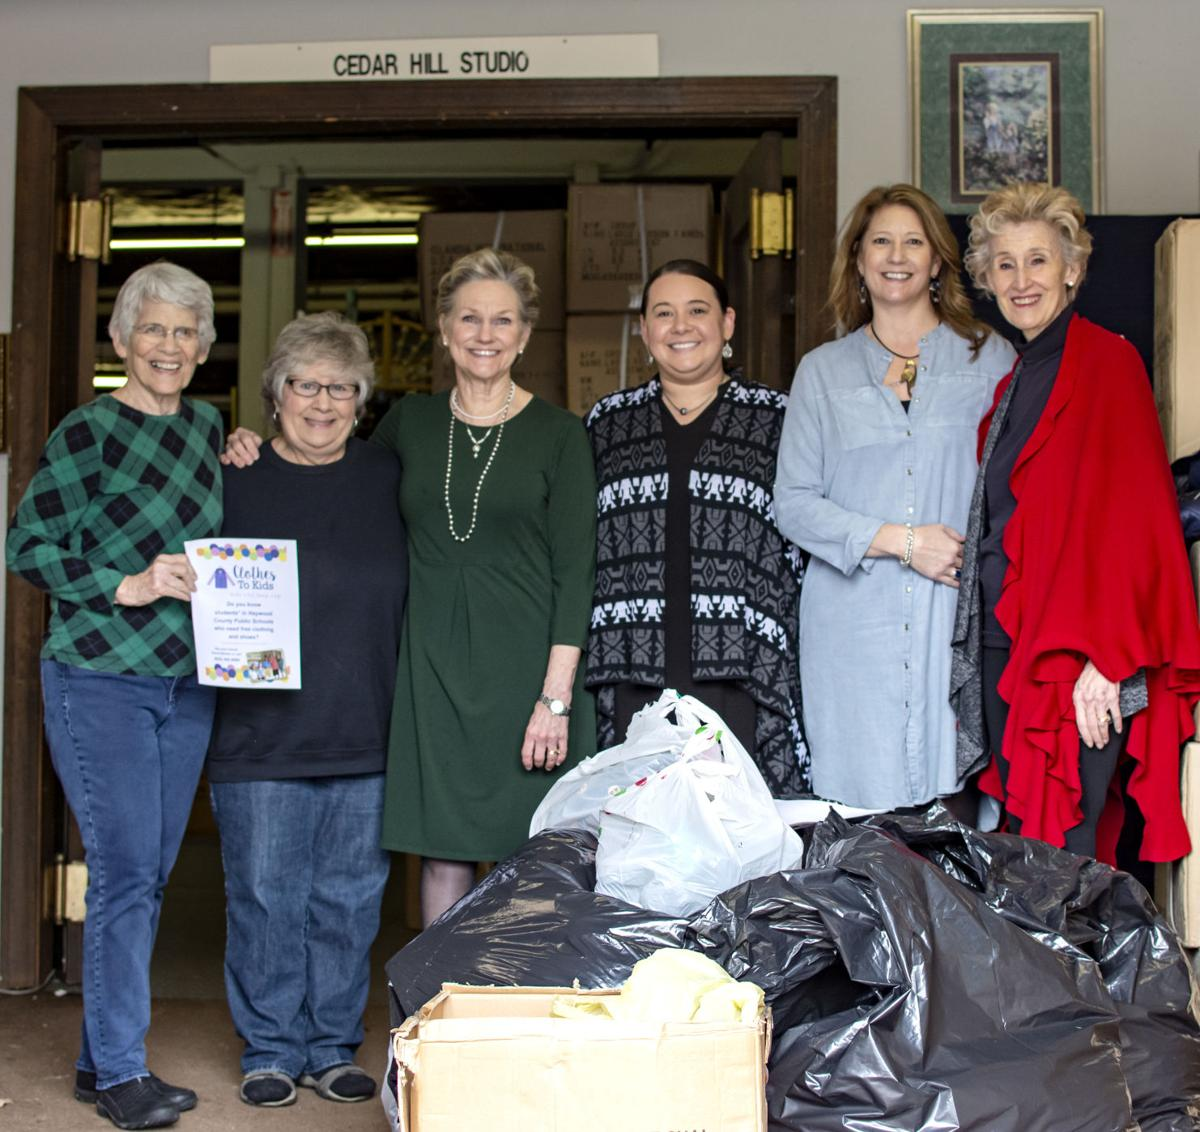 GALLERY ASSOCIATION The Waynesville Gallery Association Clothing Drive Was A Big Success For Clothes To Kids Pictured With Pile Of Donations Are